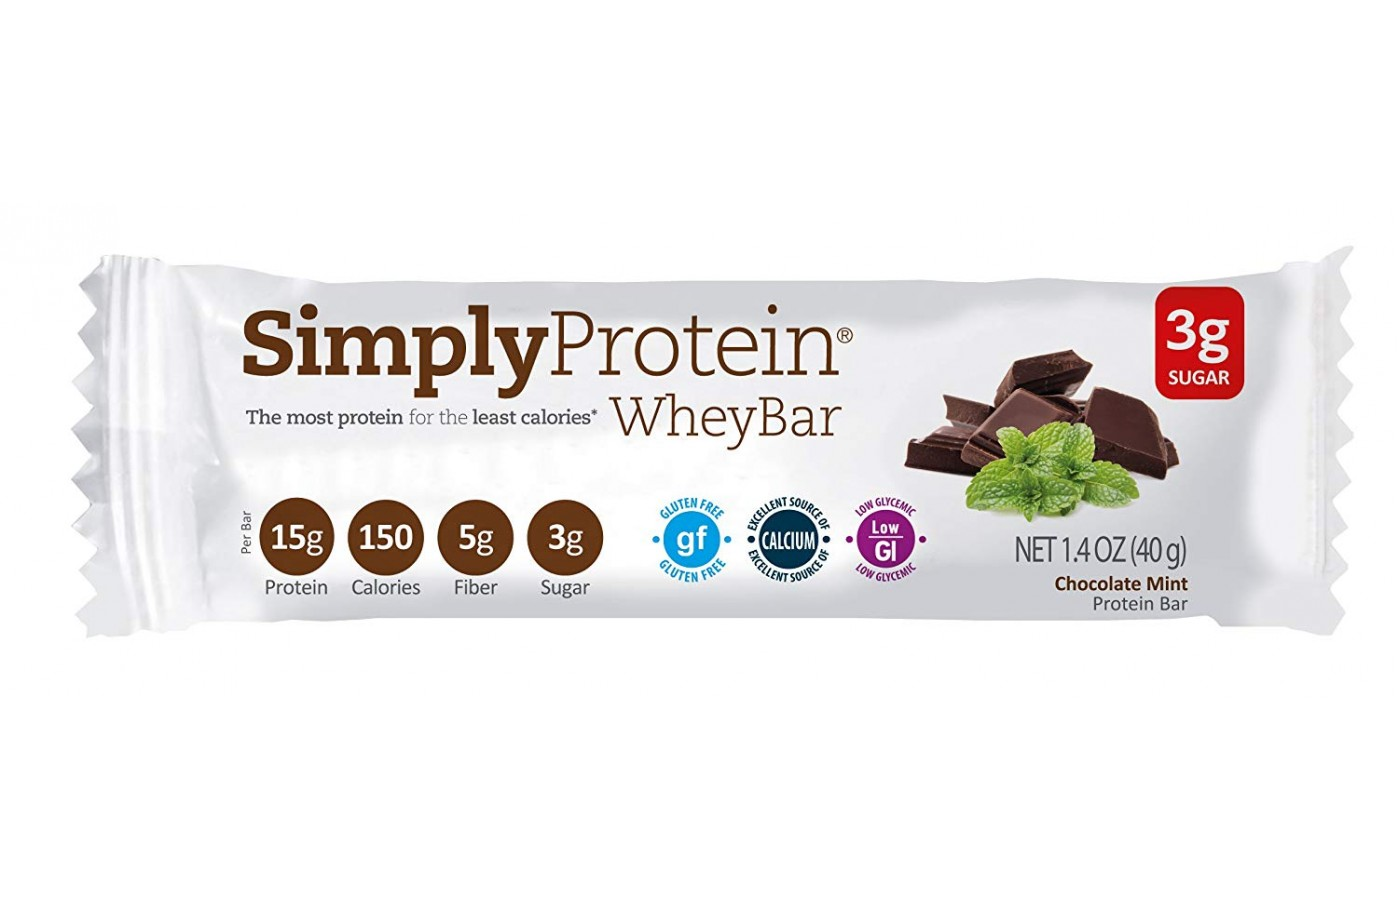 simplyprotein front